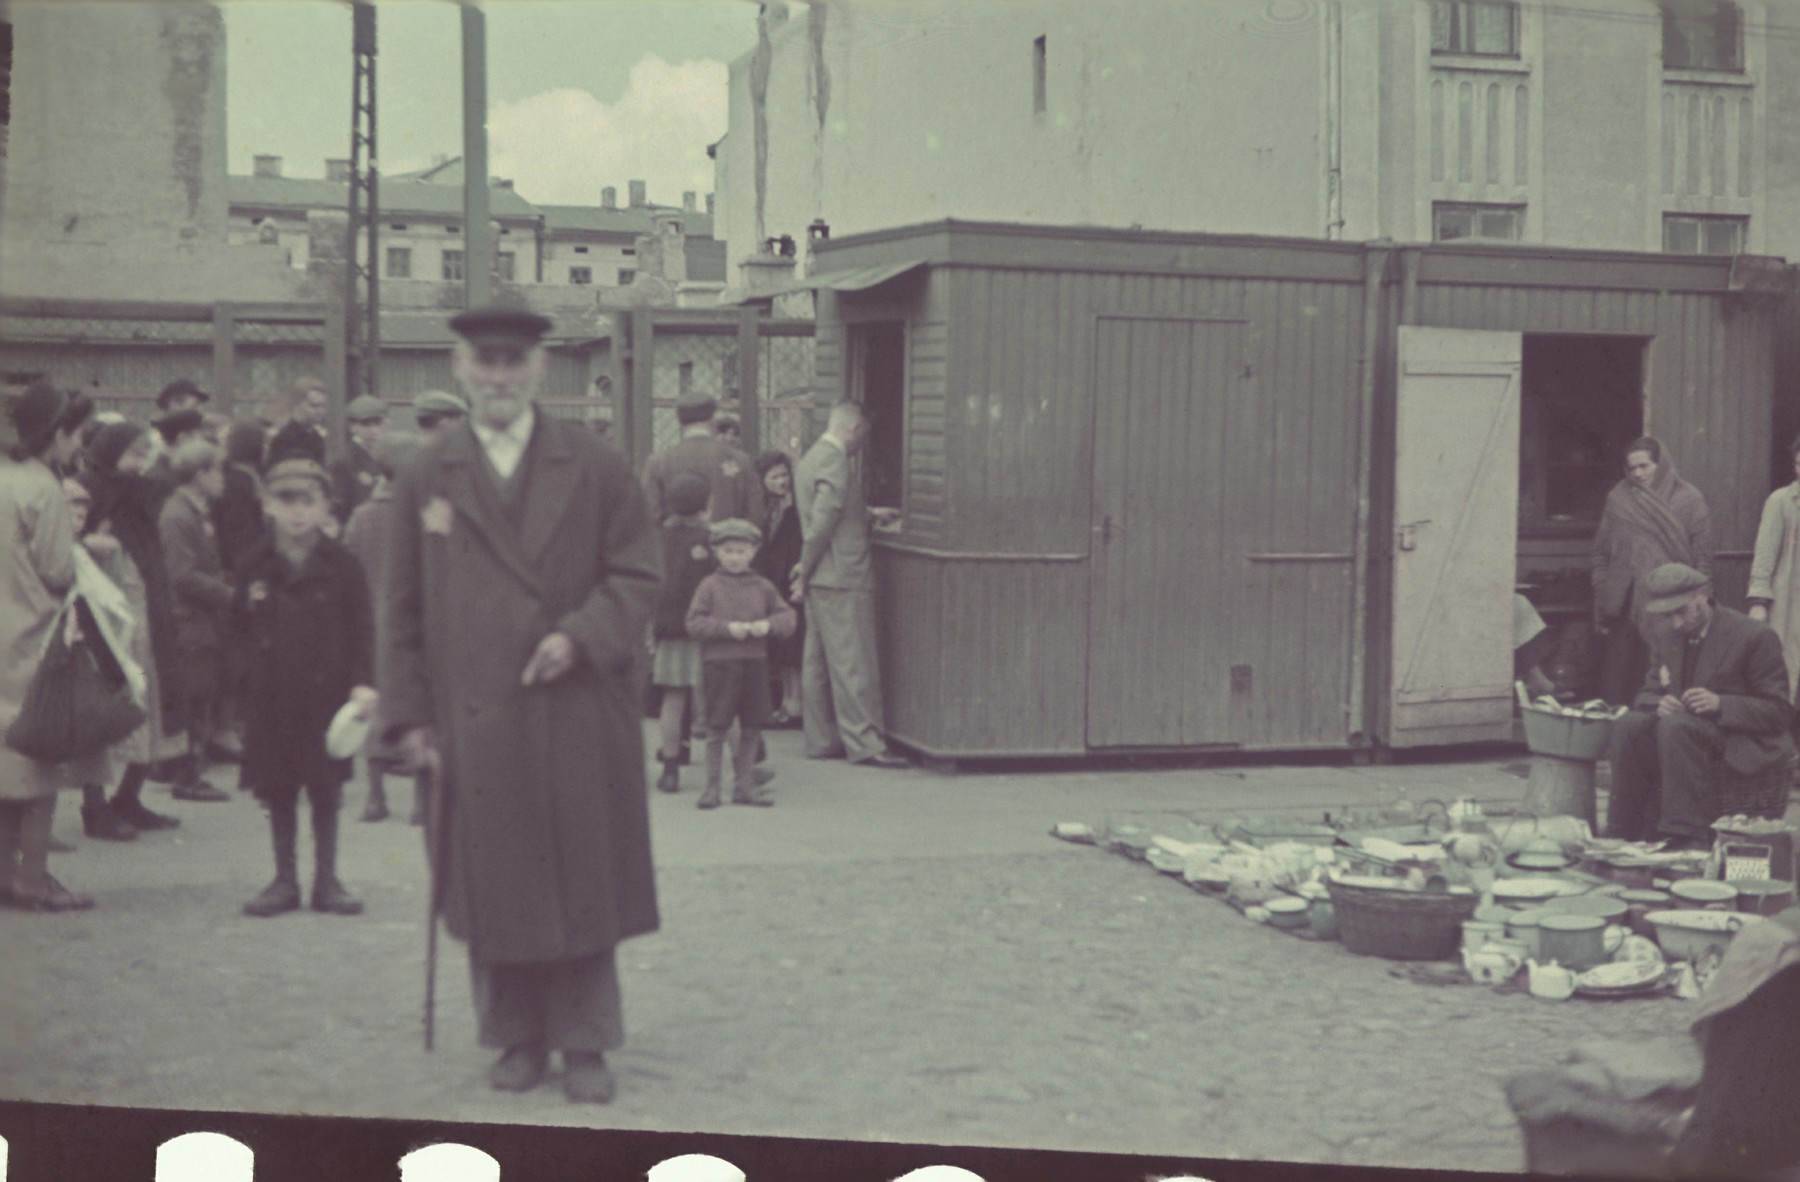 An elderly man  carrying a cane poses in the market in the Lodz ghetto.